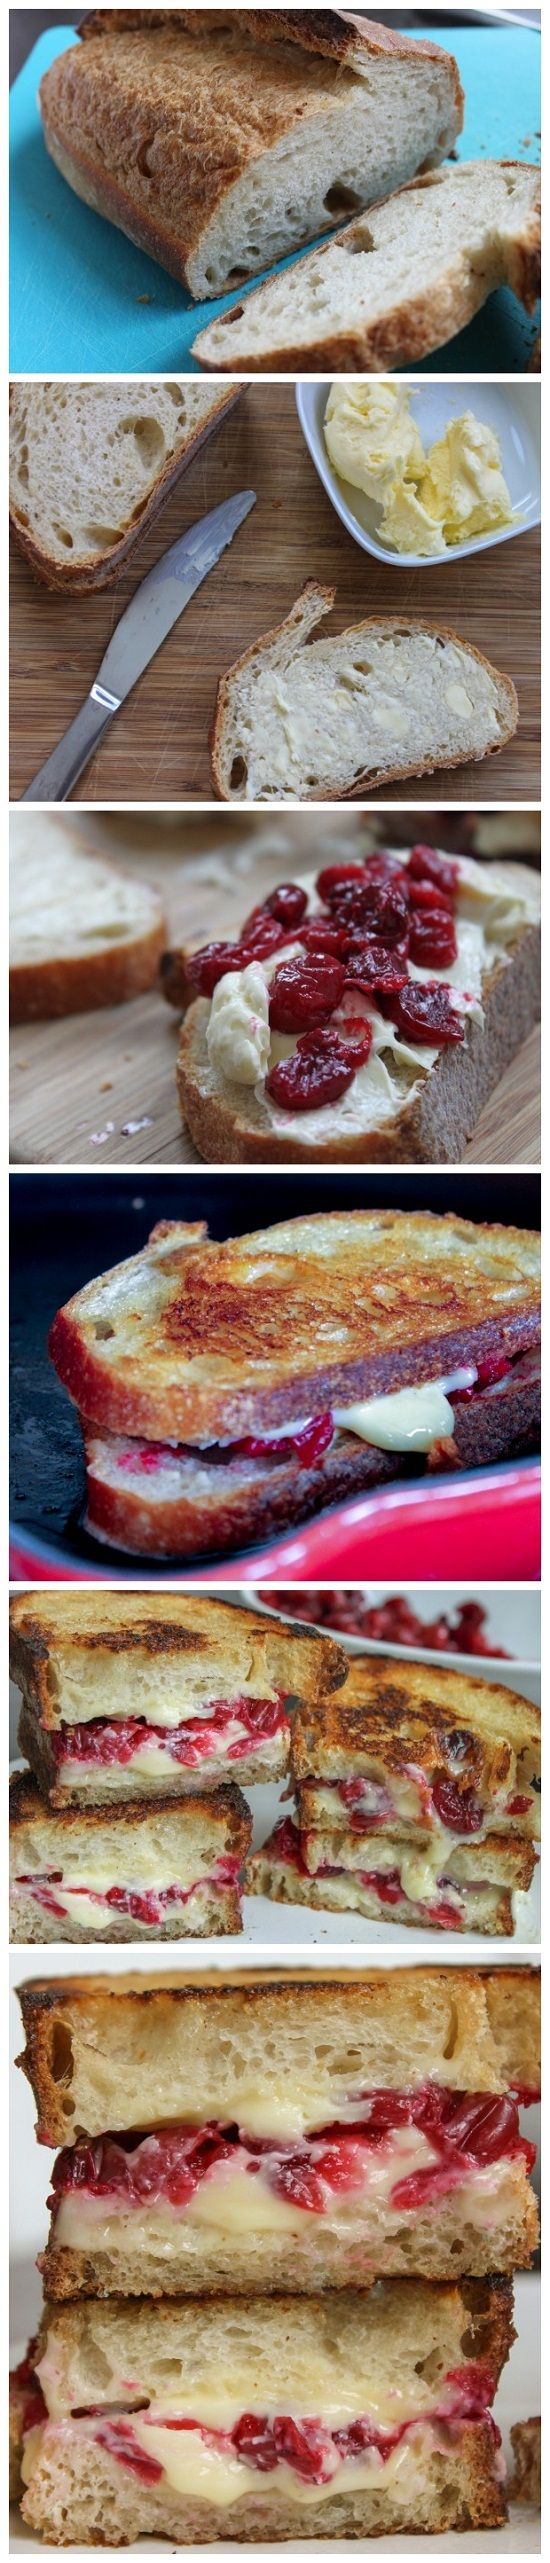 Roasted Cranberry & Brie Grilled Cheese | Sandwich. | Pinterest